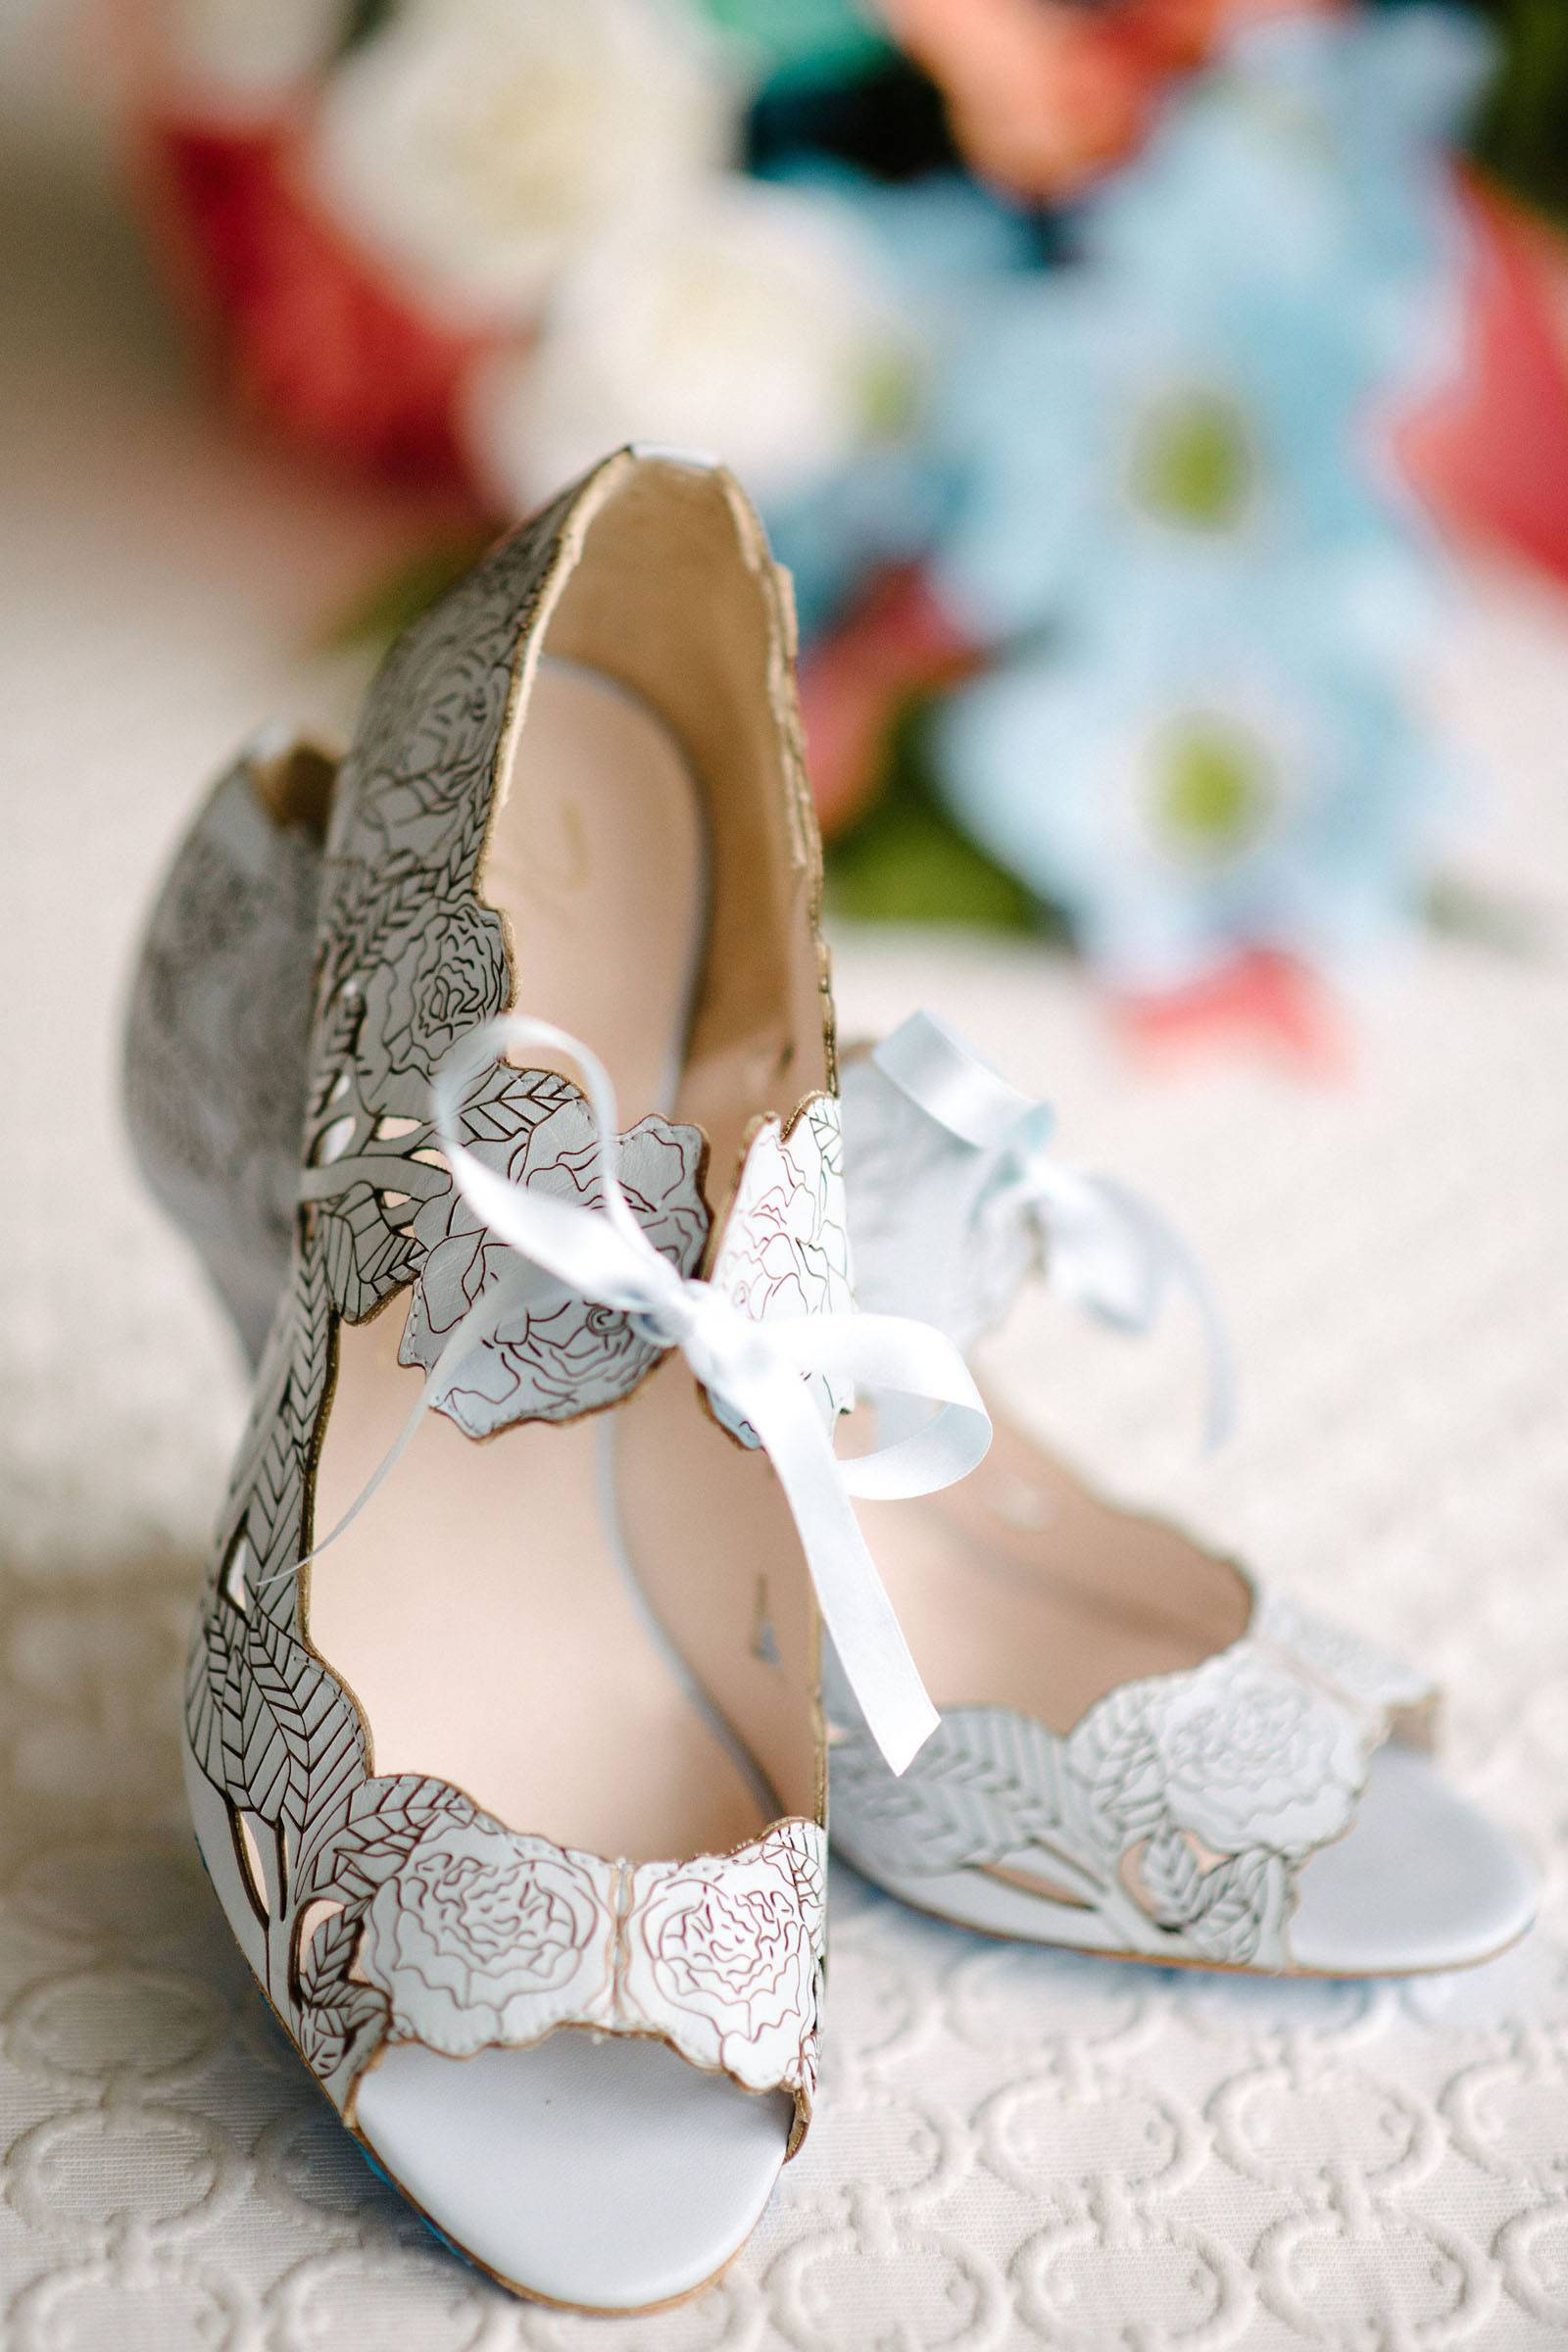 Powder blue heels with etched floral design in gold